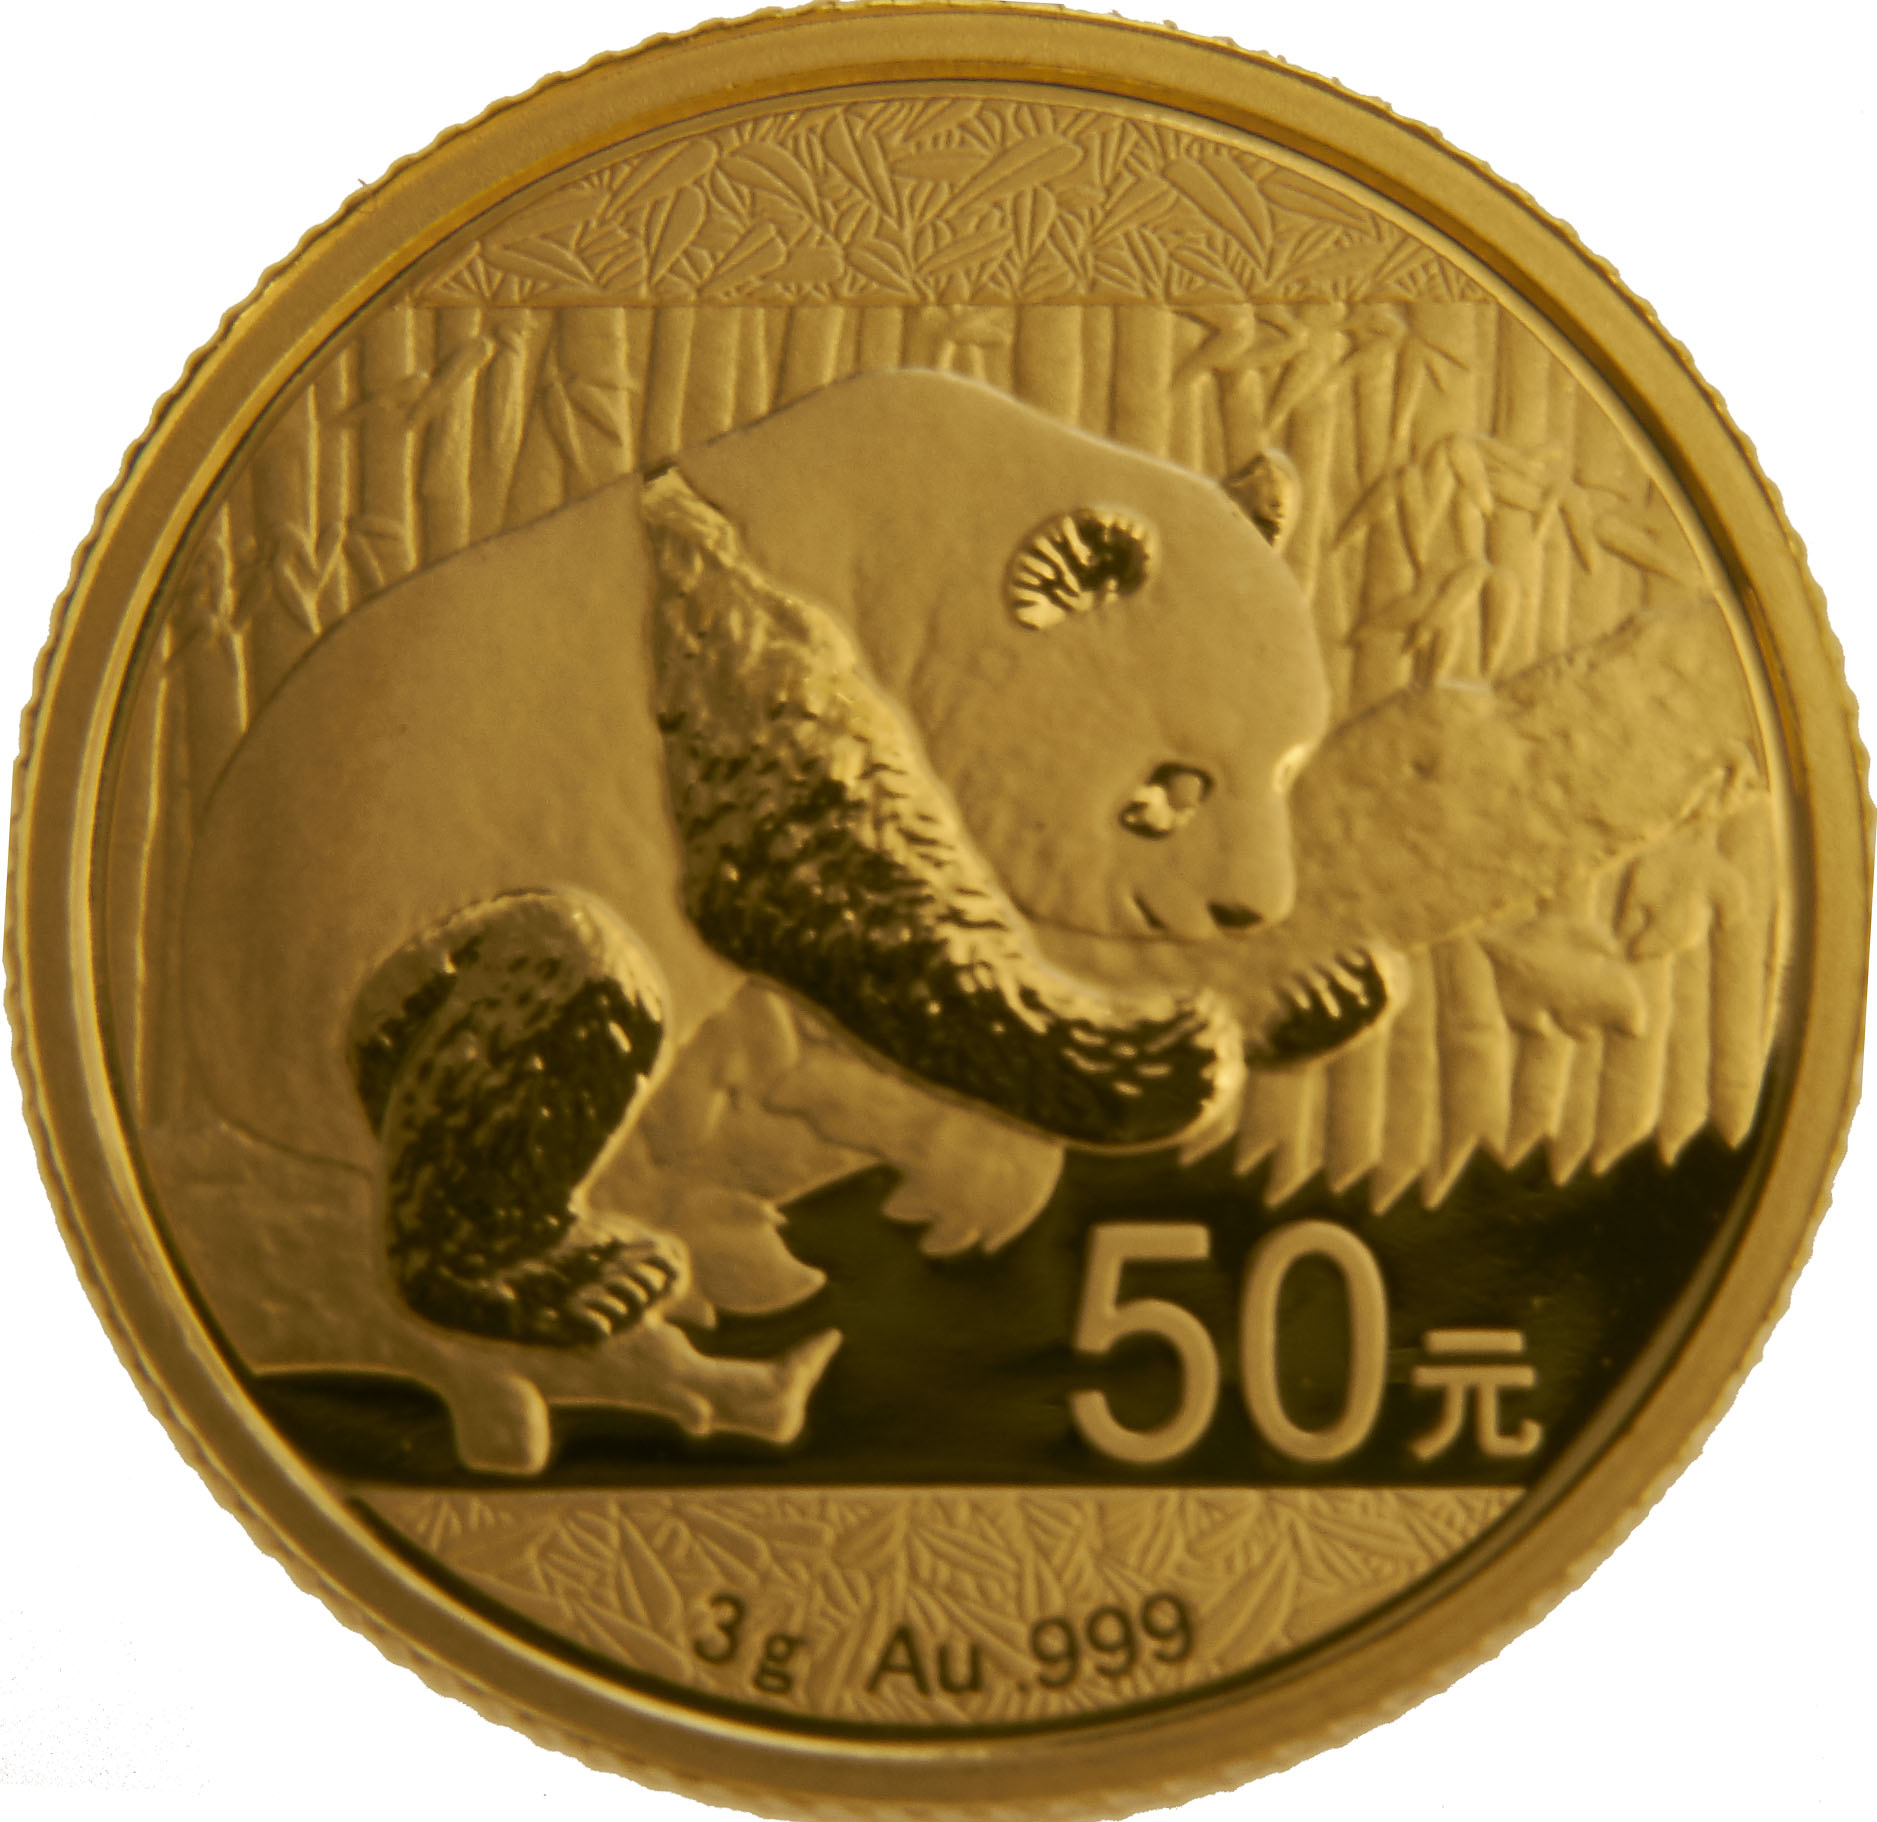 2016 3 gram Gold Chinese Panda Coin